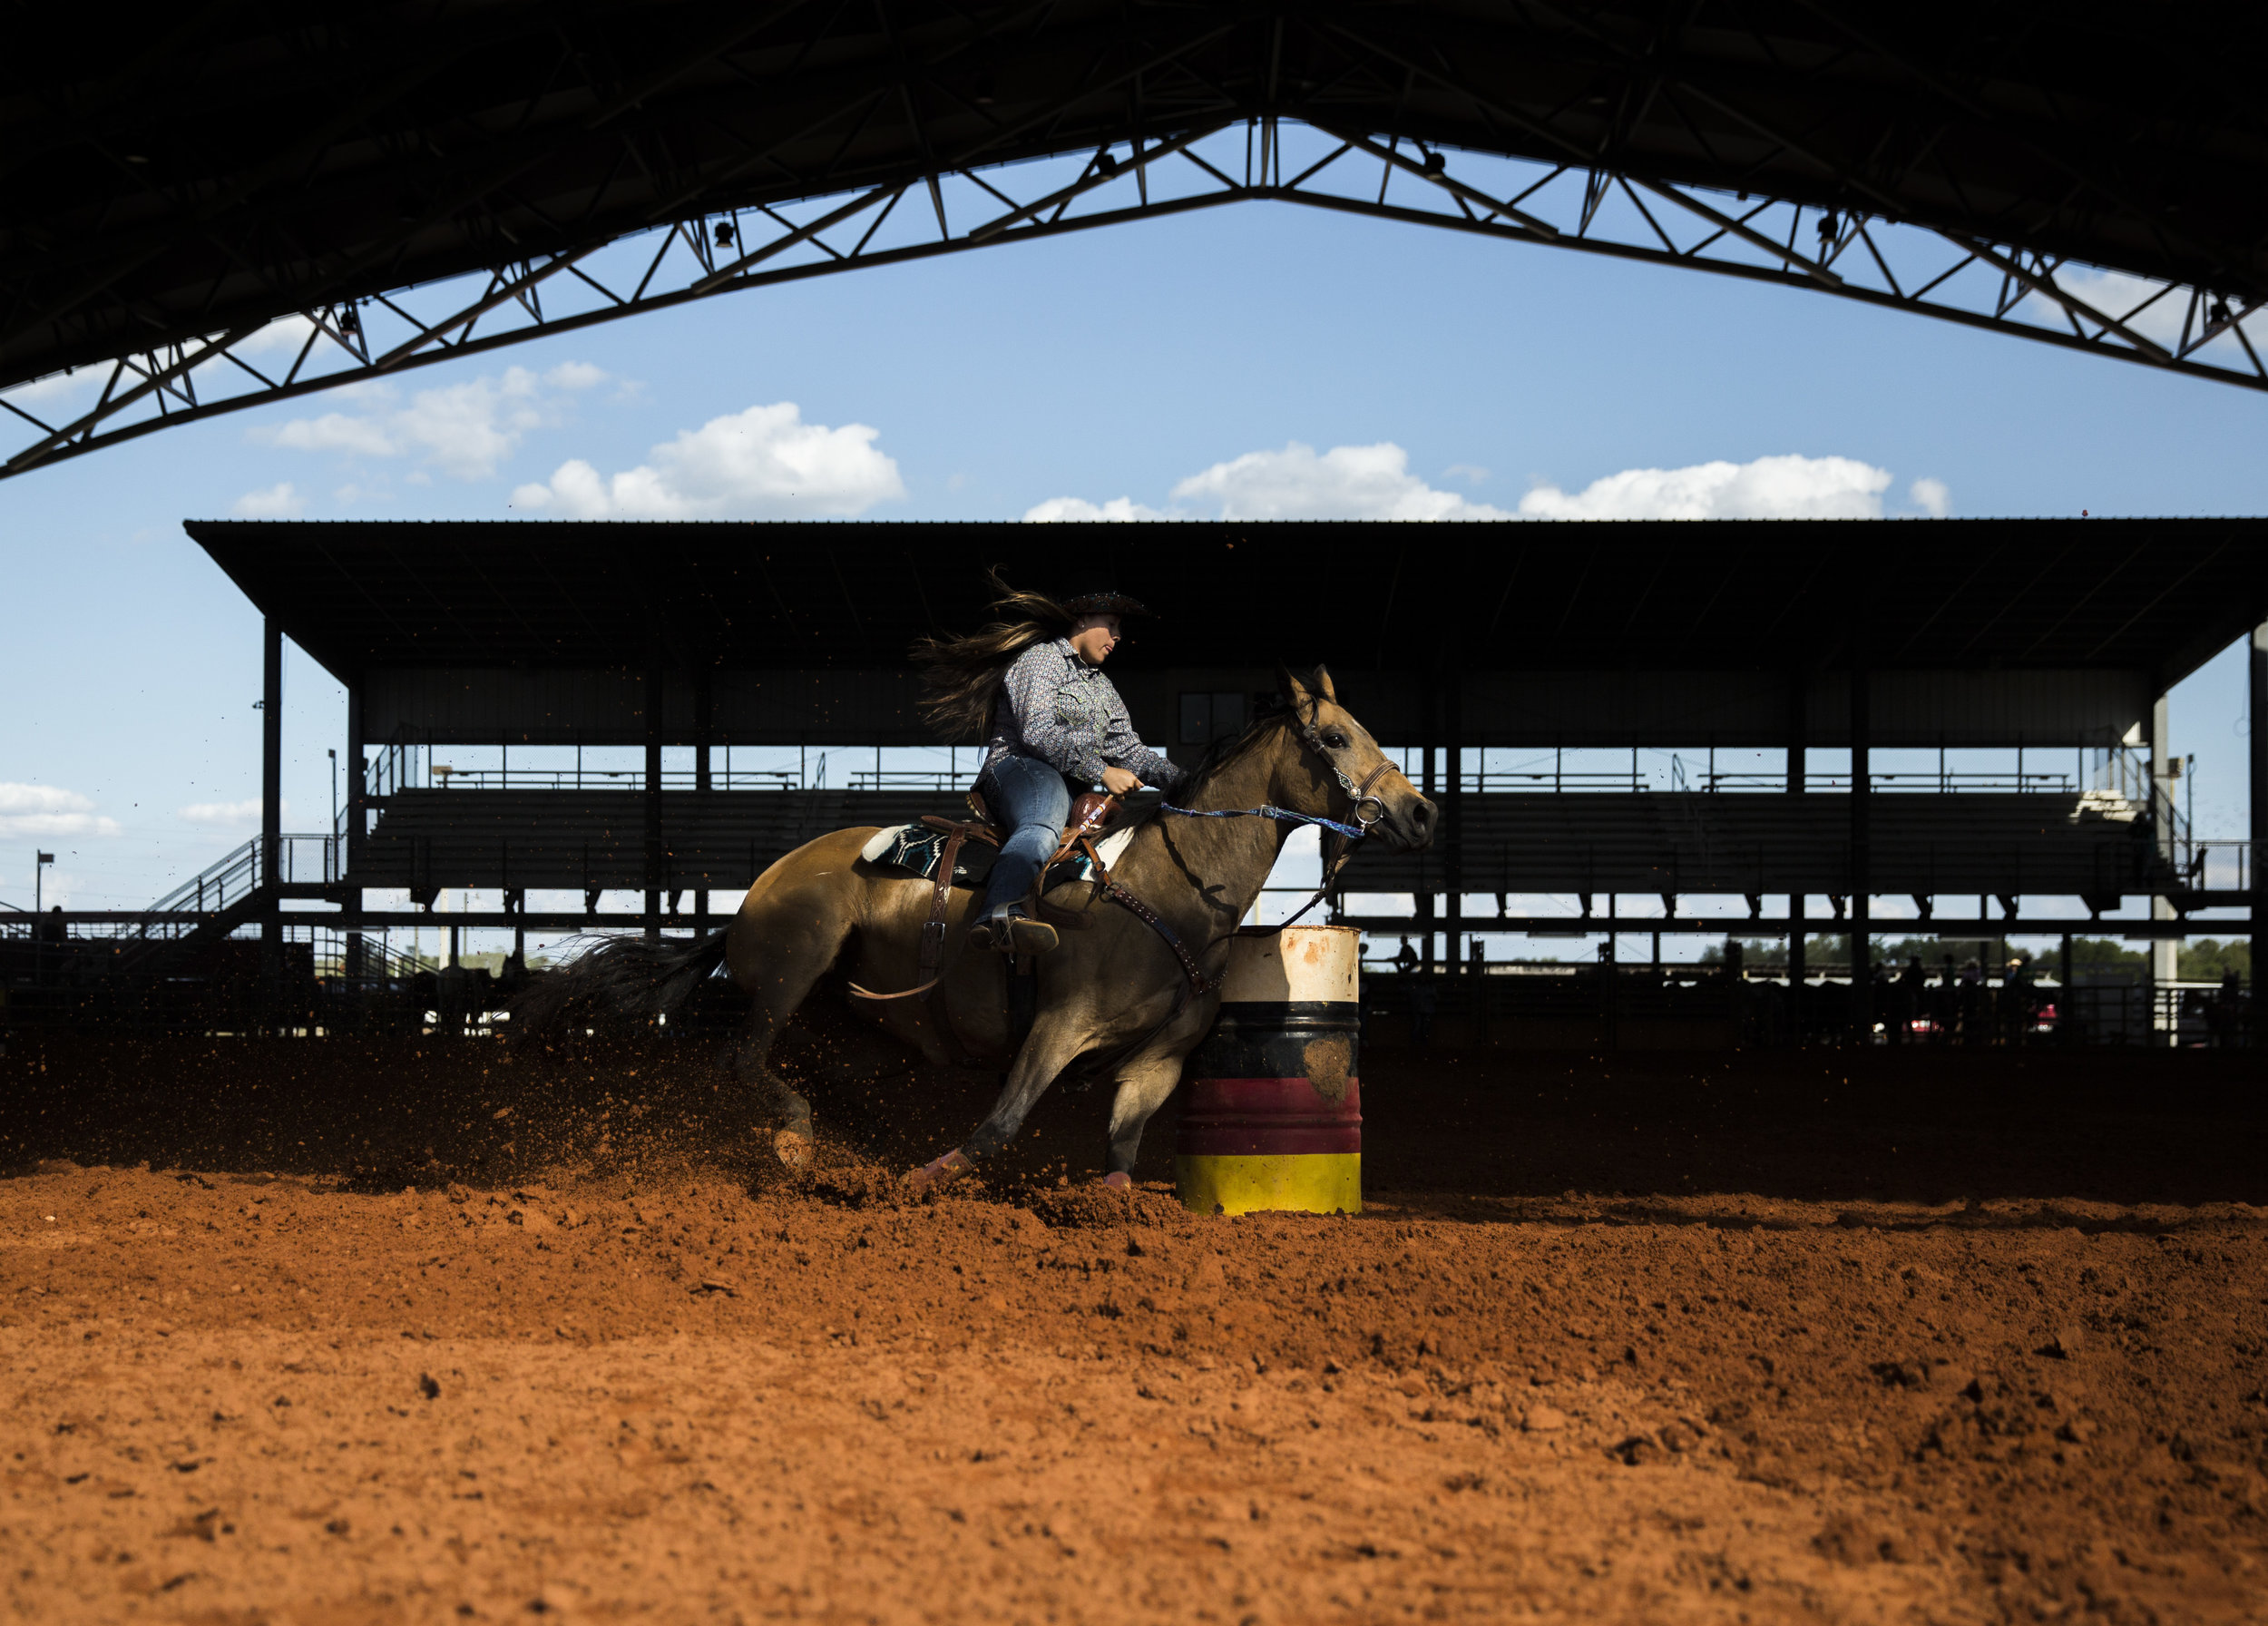 Budha Jumper competes in 13-17 year old barrel racing during the Junior Cypress Memorial Rodeo at the Junior Cypress Rodeo Arena in Clewiston, Fla. on Saturday, March 17, 2018.